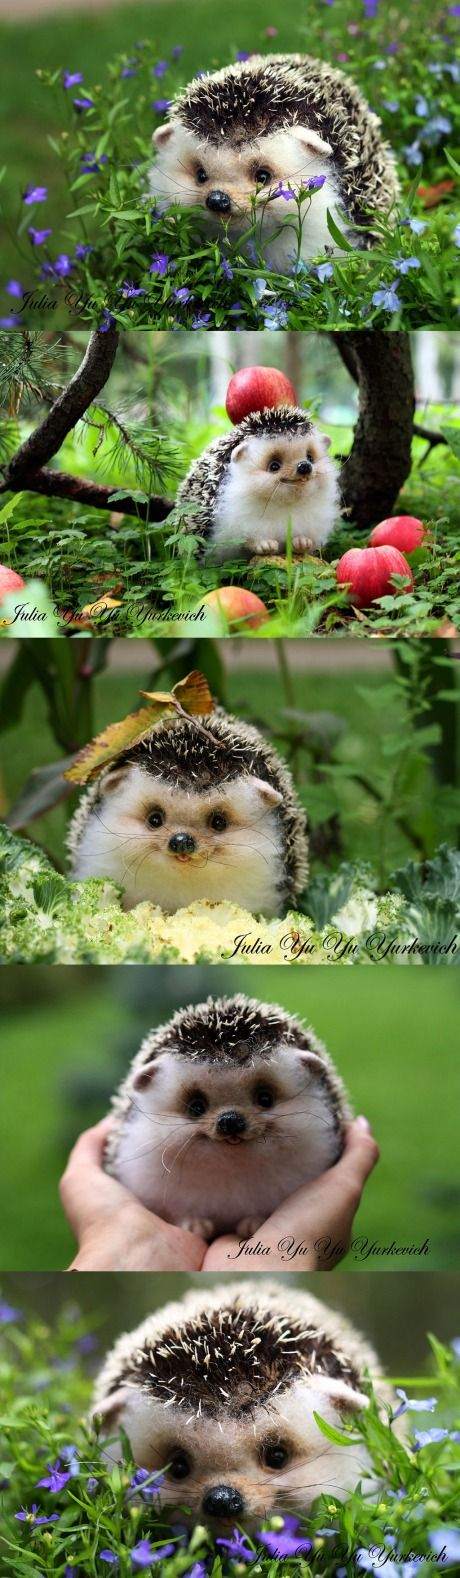 Happy hedgehog how sweet!: